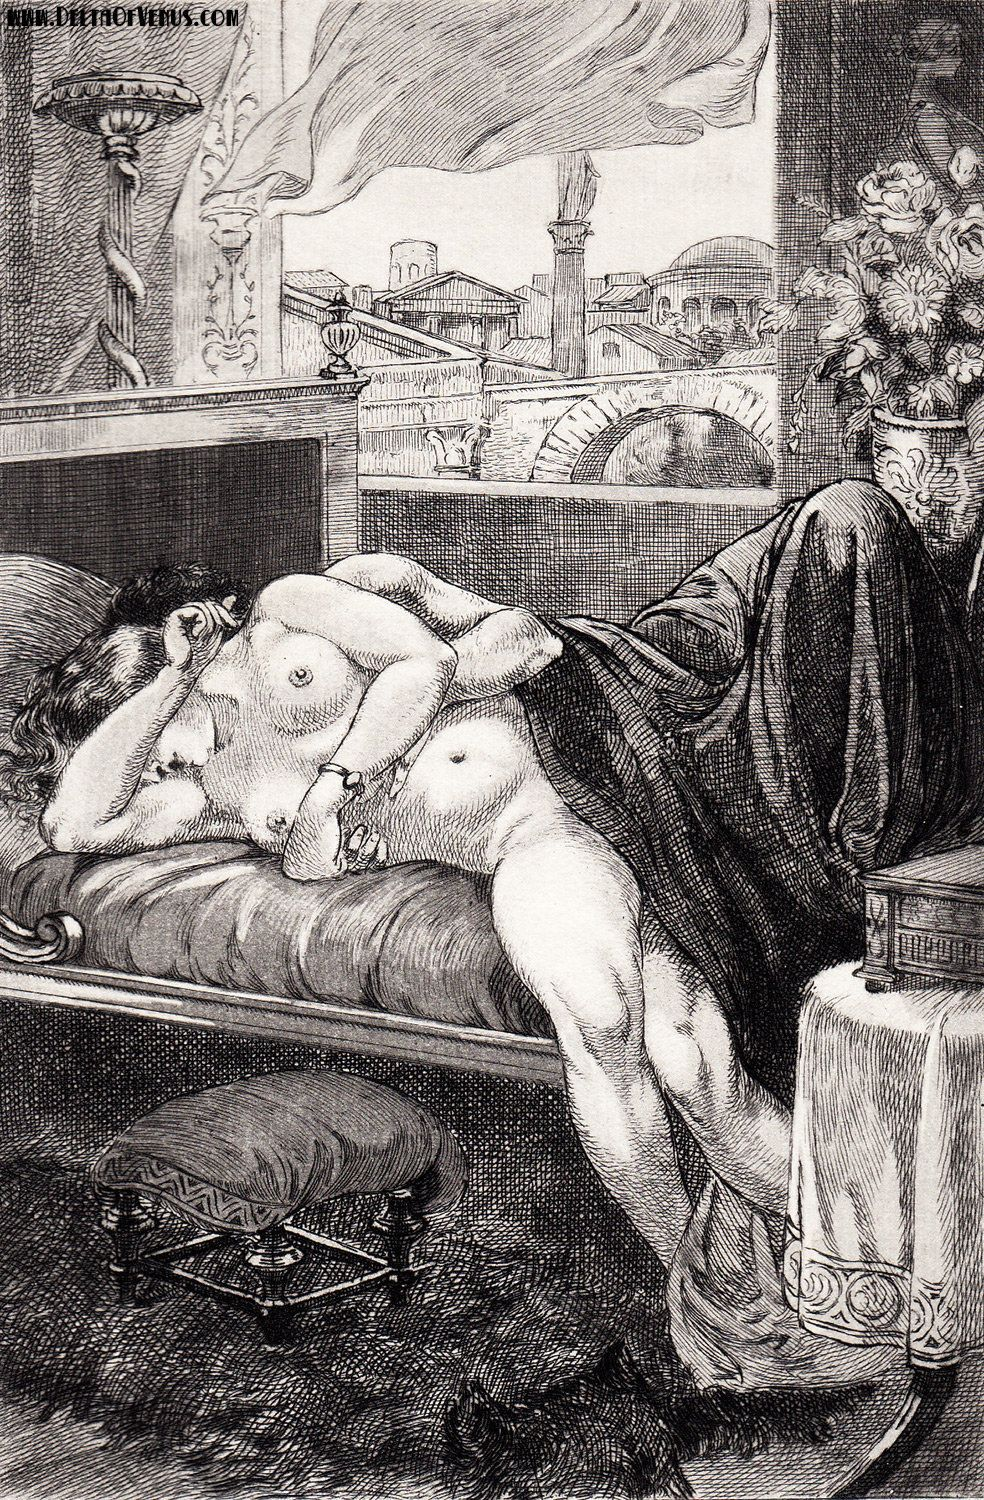 Erotic victoriana drawings photos illustrations